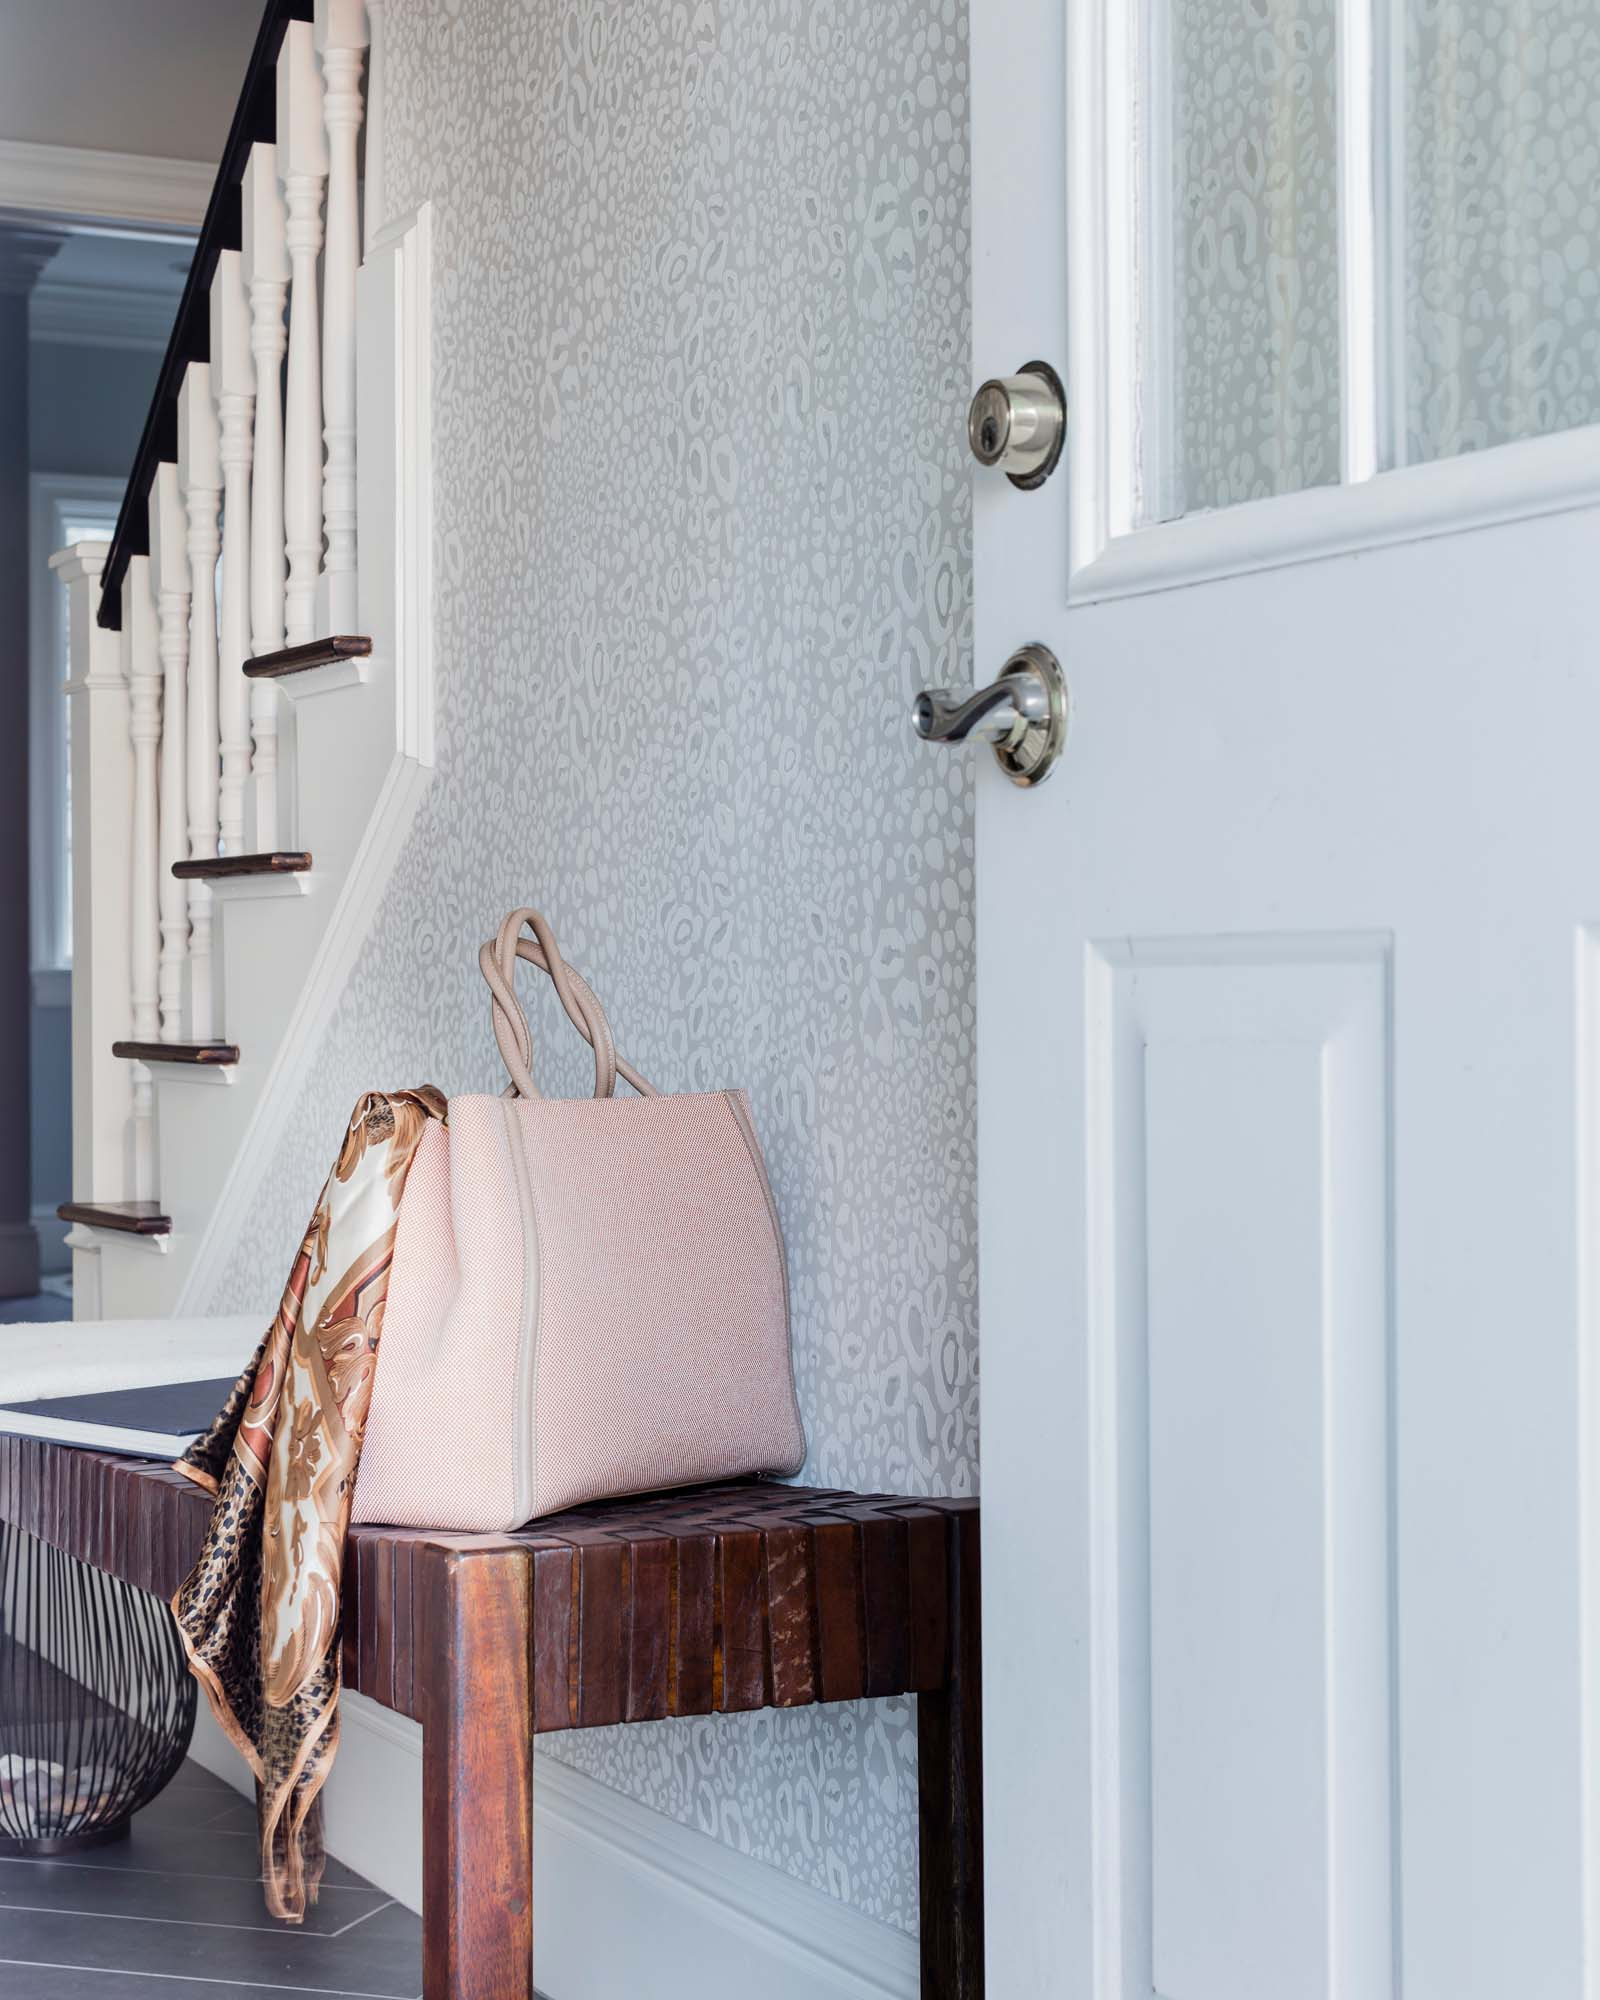 House interior with white wooden door, wooden table, and stairway, leather bench, farrow and ball, wallpaper, ocelot, fendi, purse, handbag